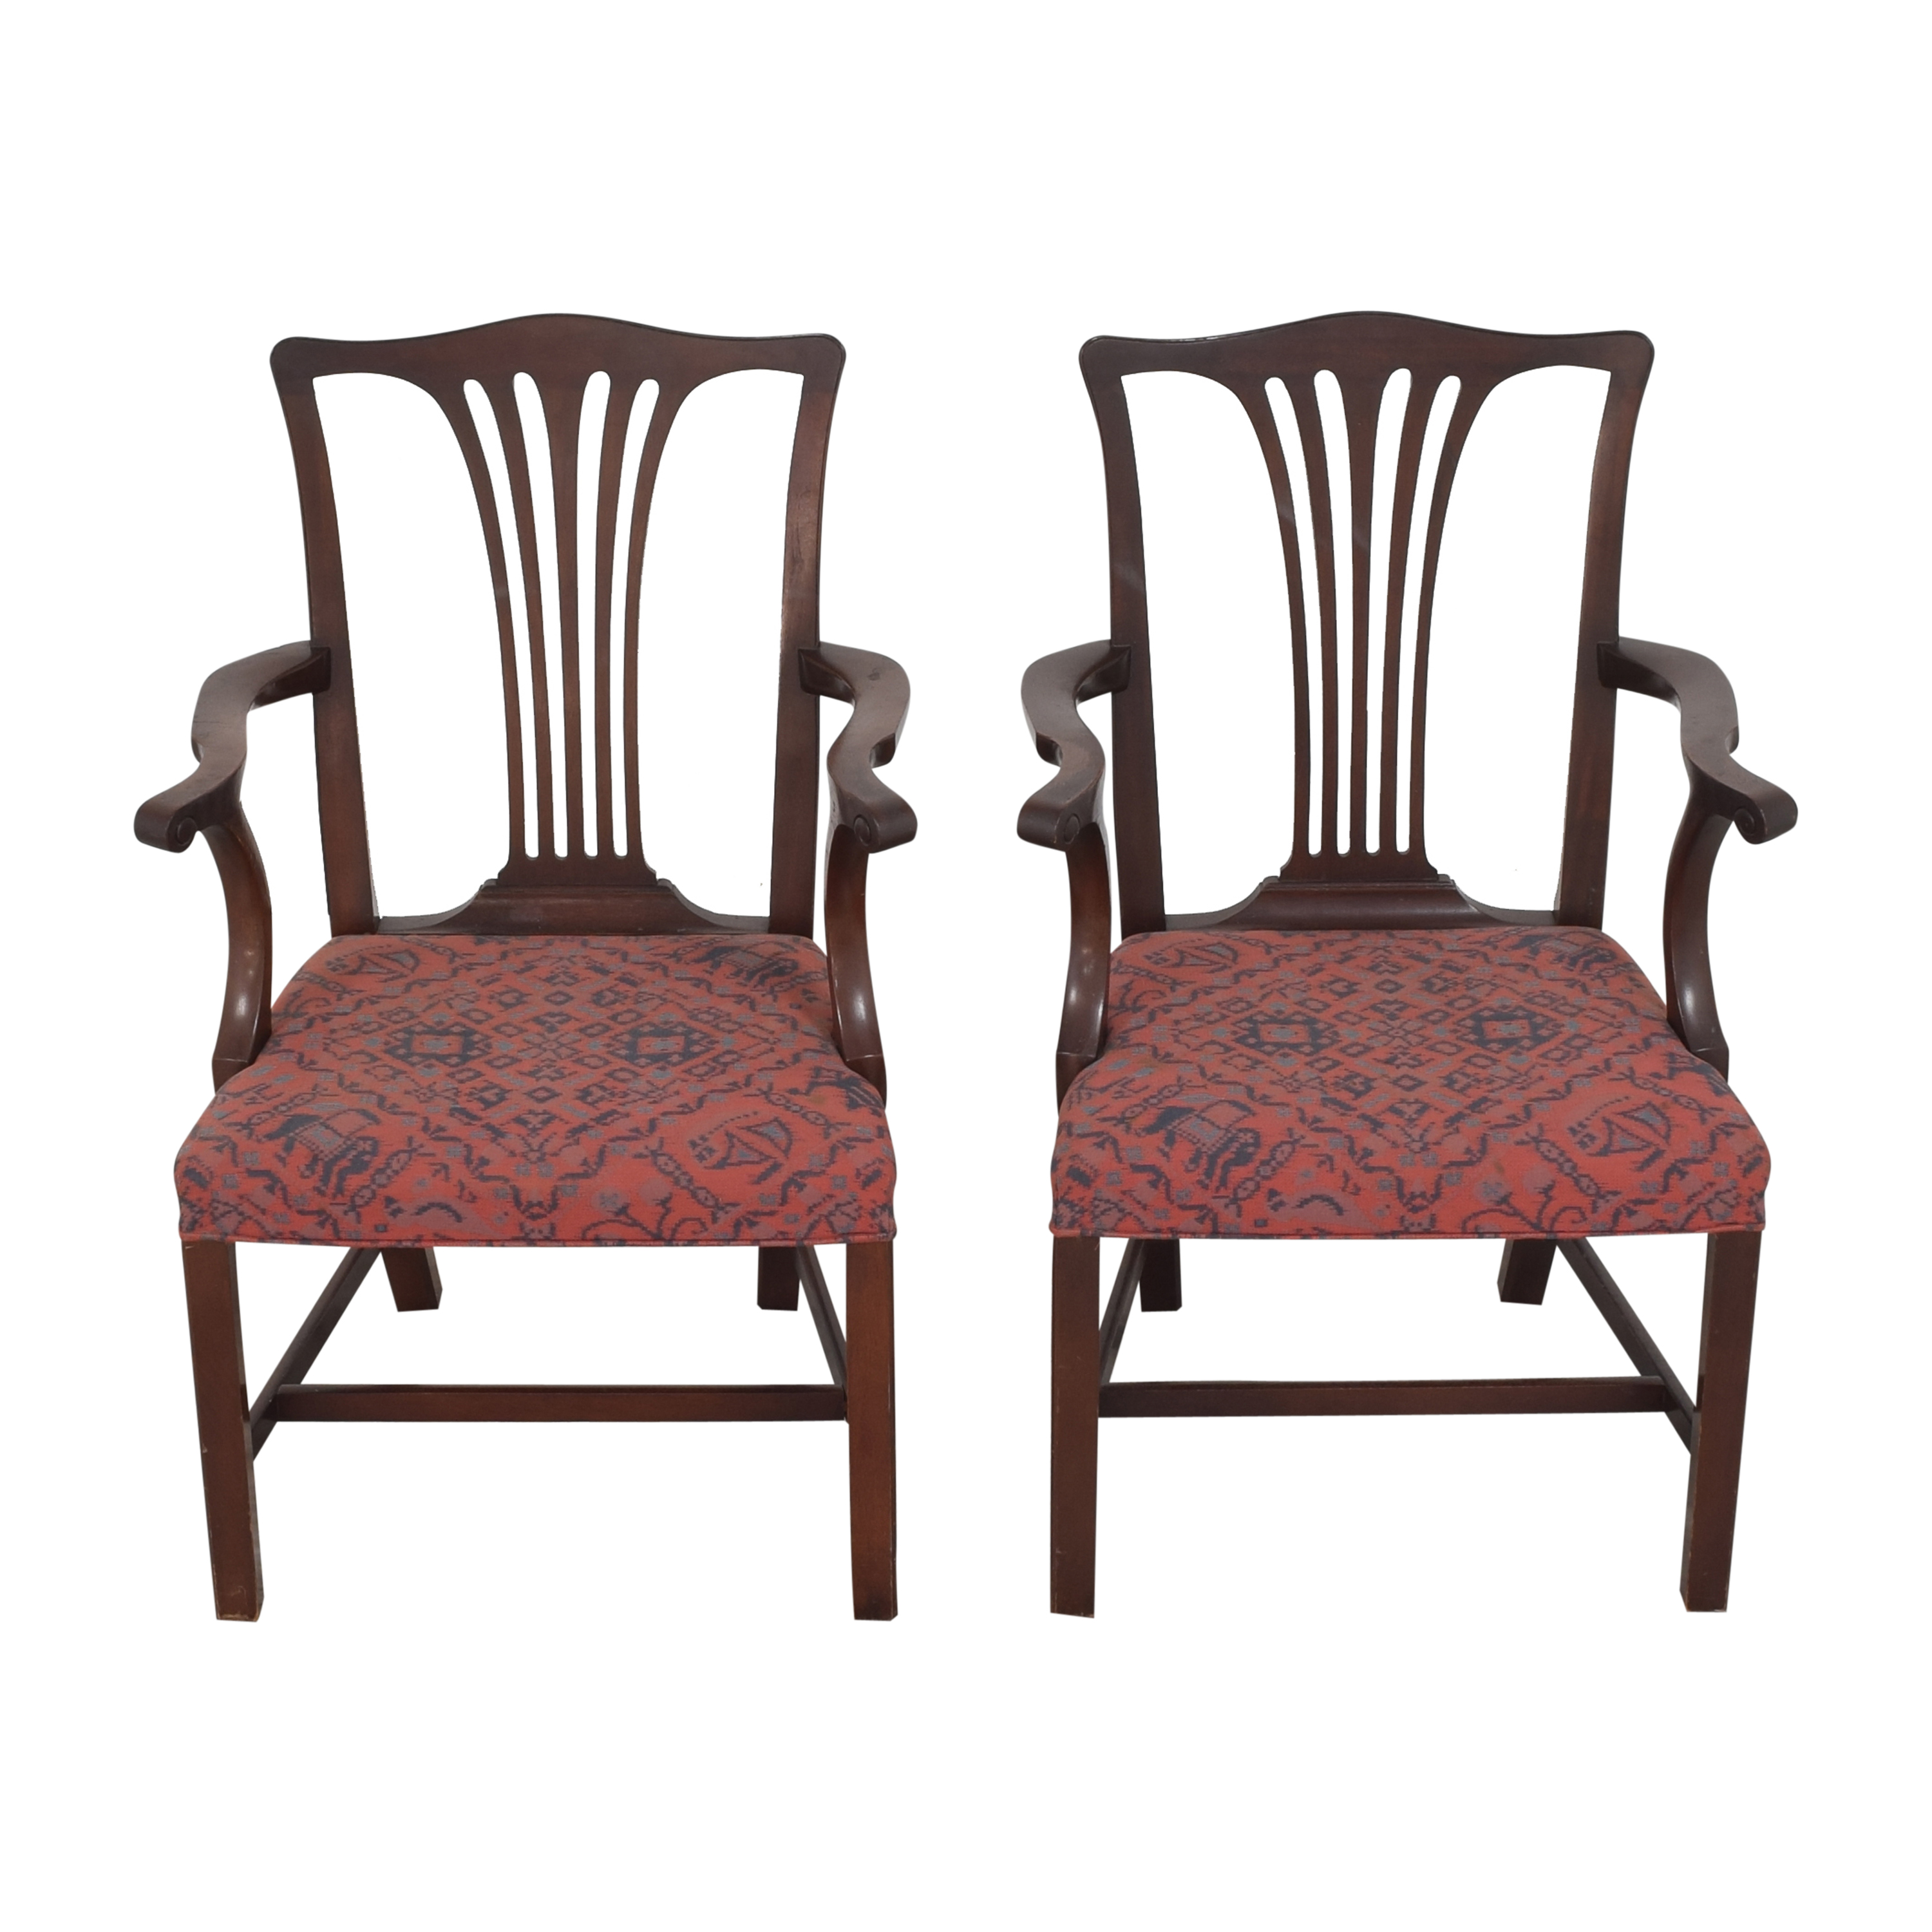 Wood & Hogan Wood & Hogan Country Chippendale Dining Arm Chairs ct